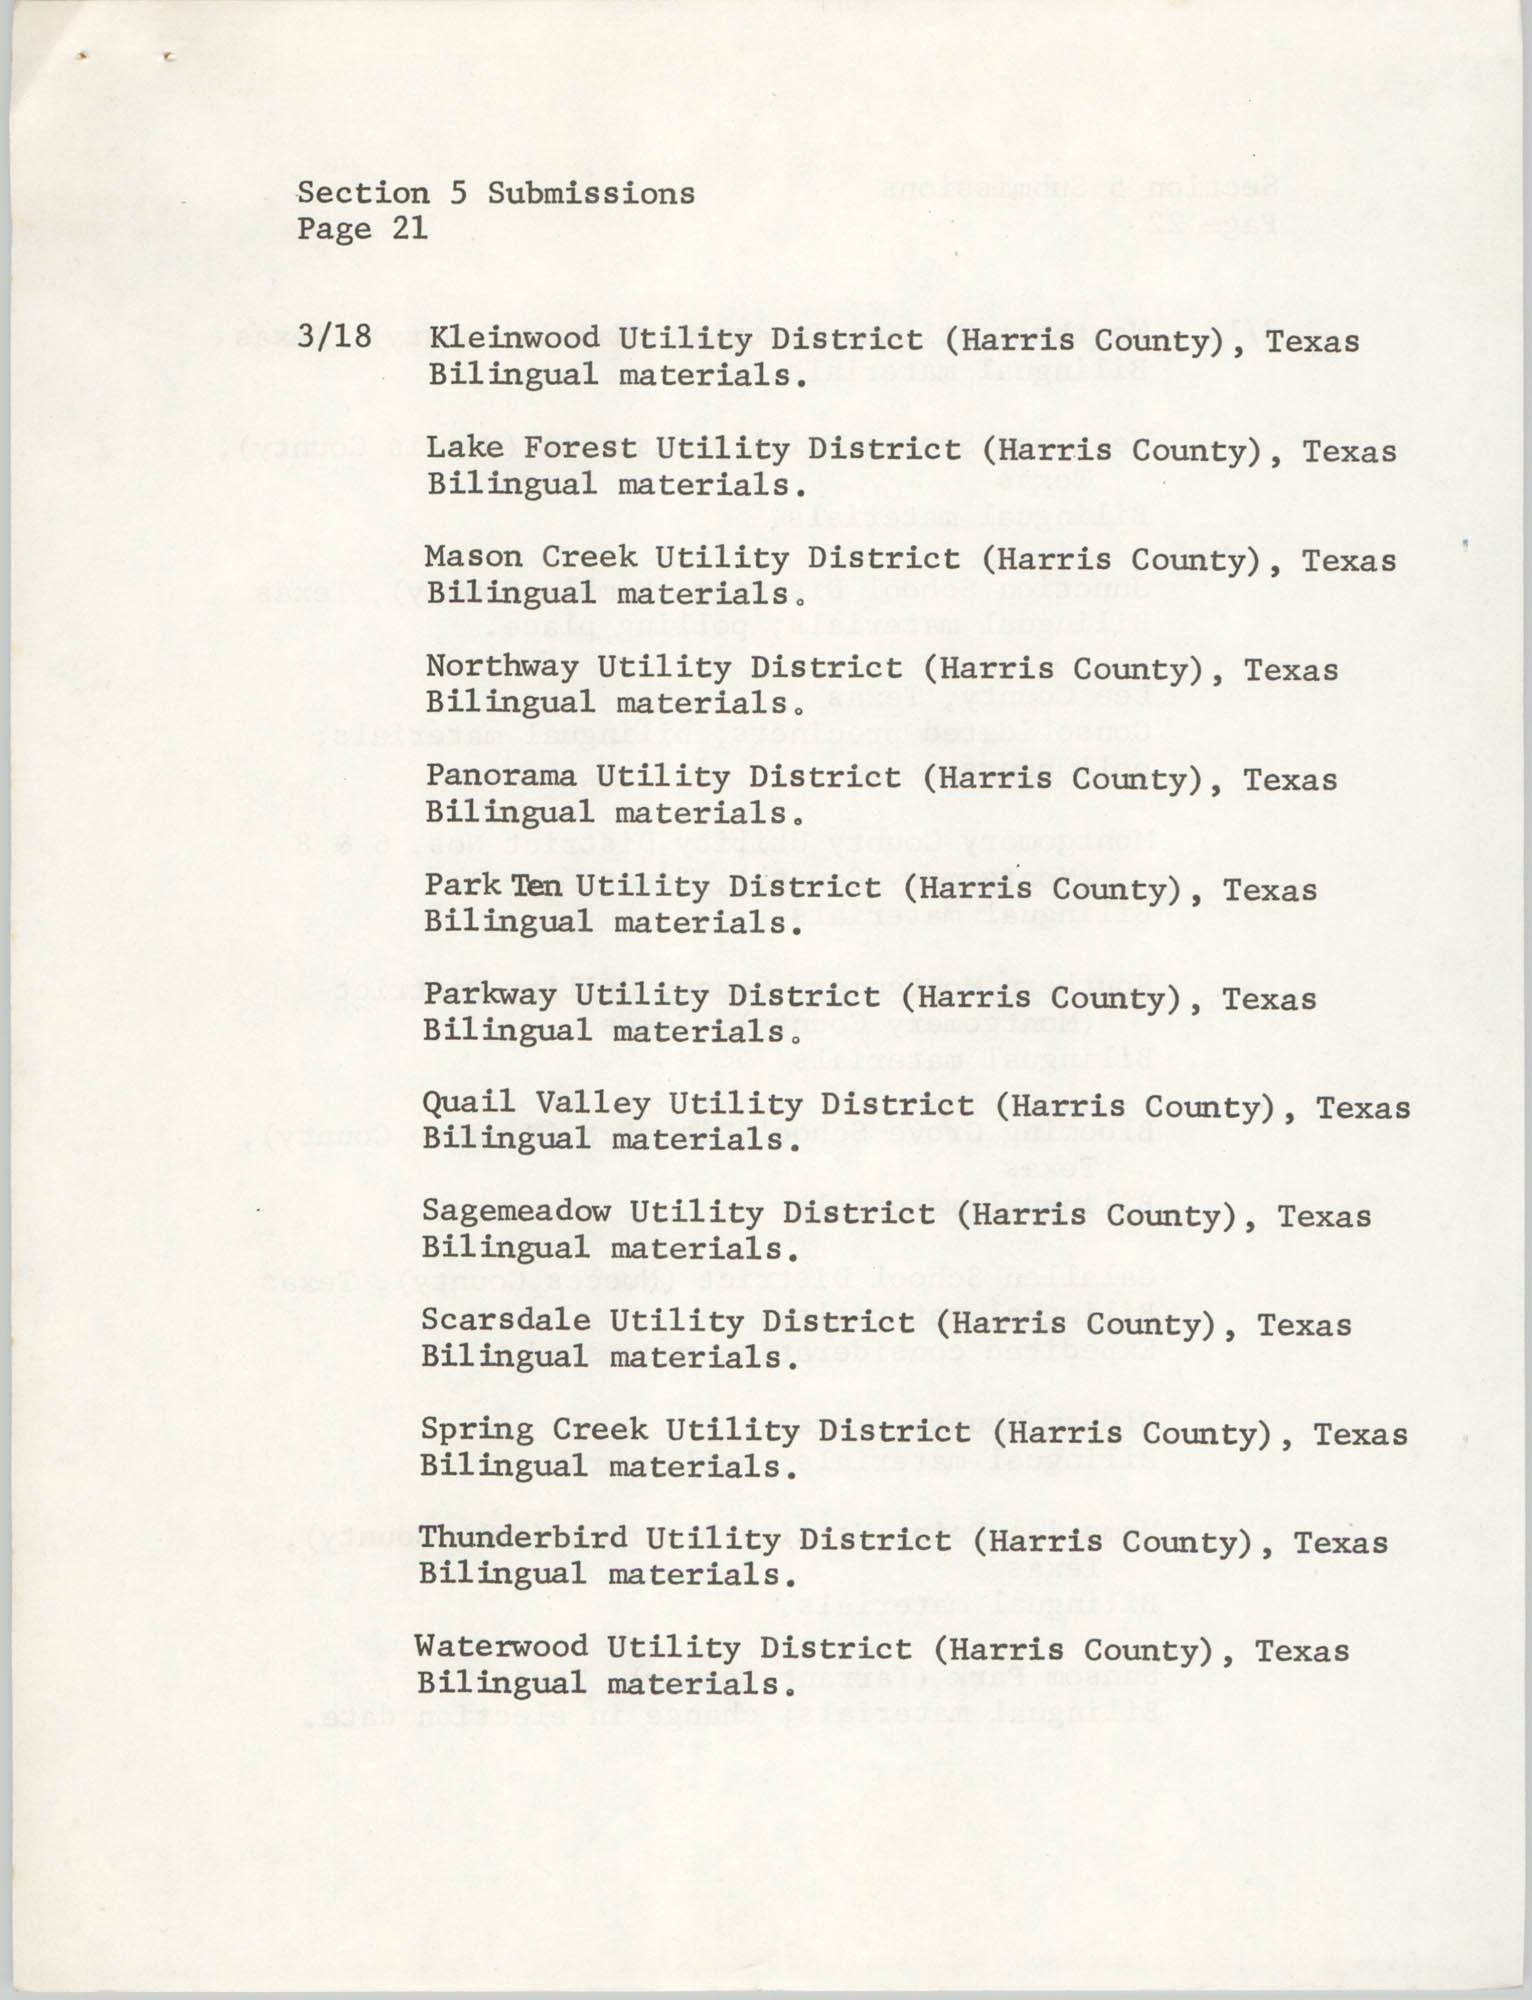 United States Department of Justice Notice, March 26, 1976, Page 21